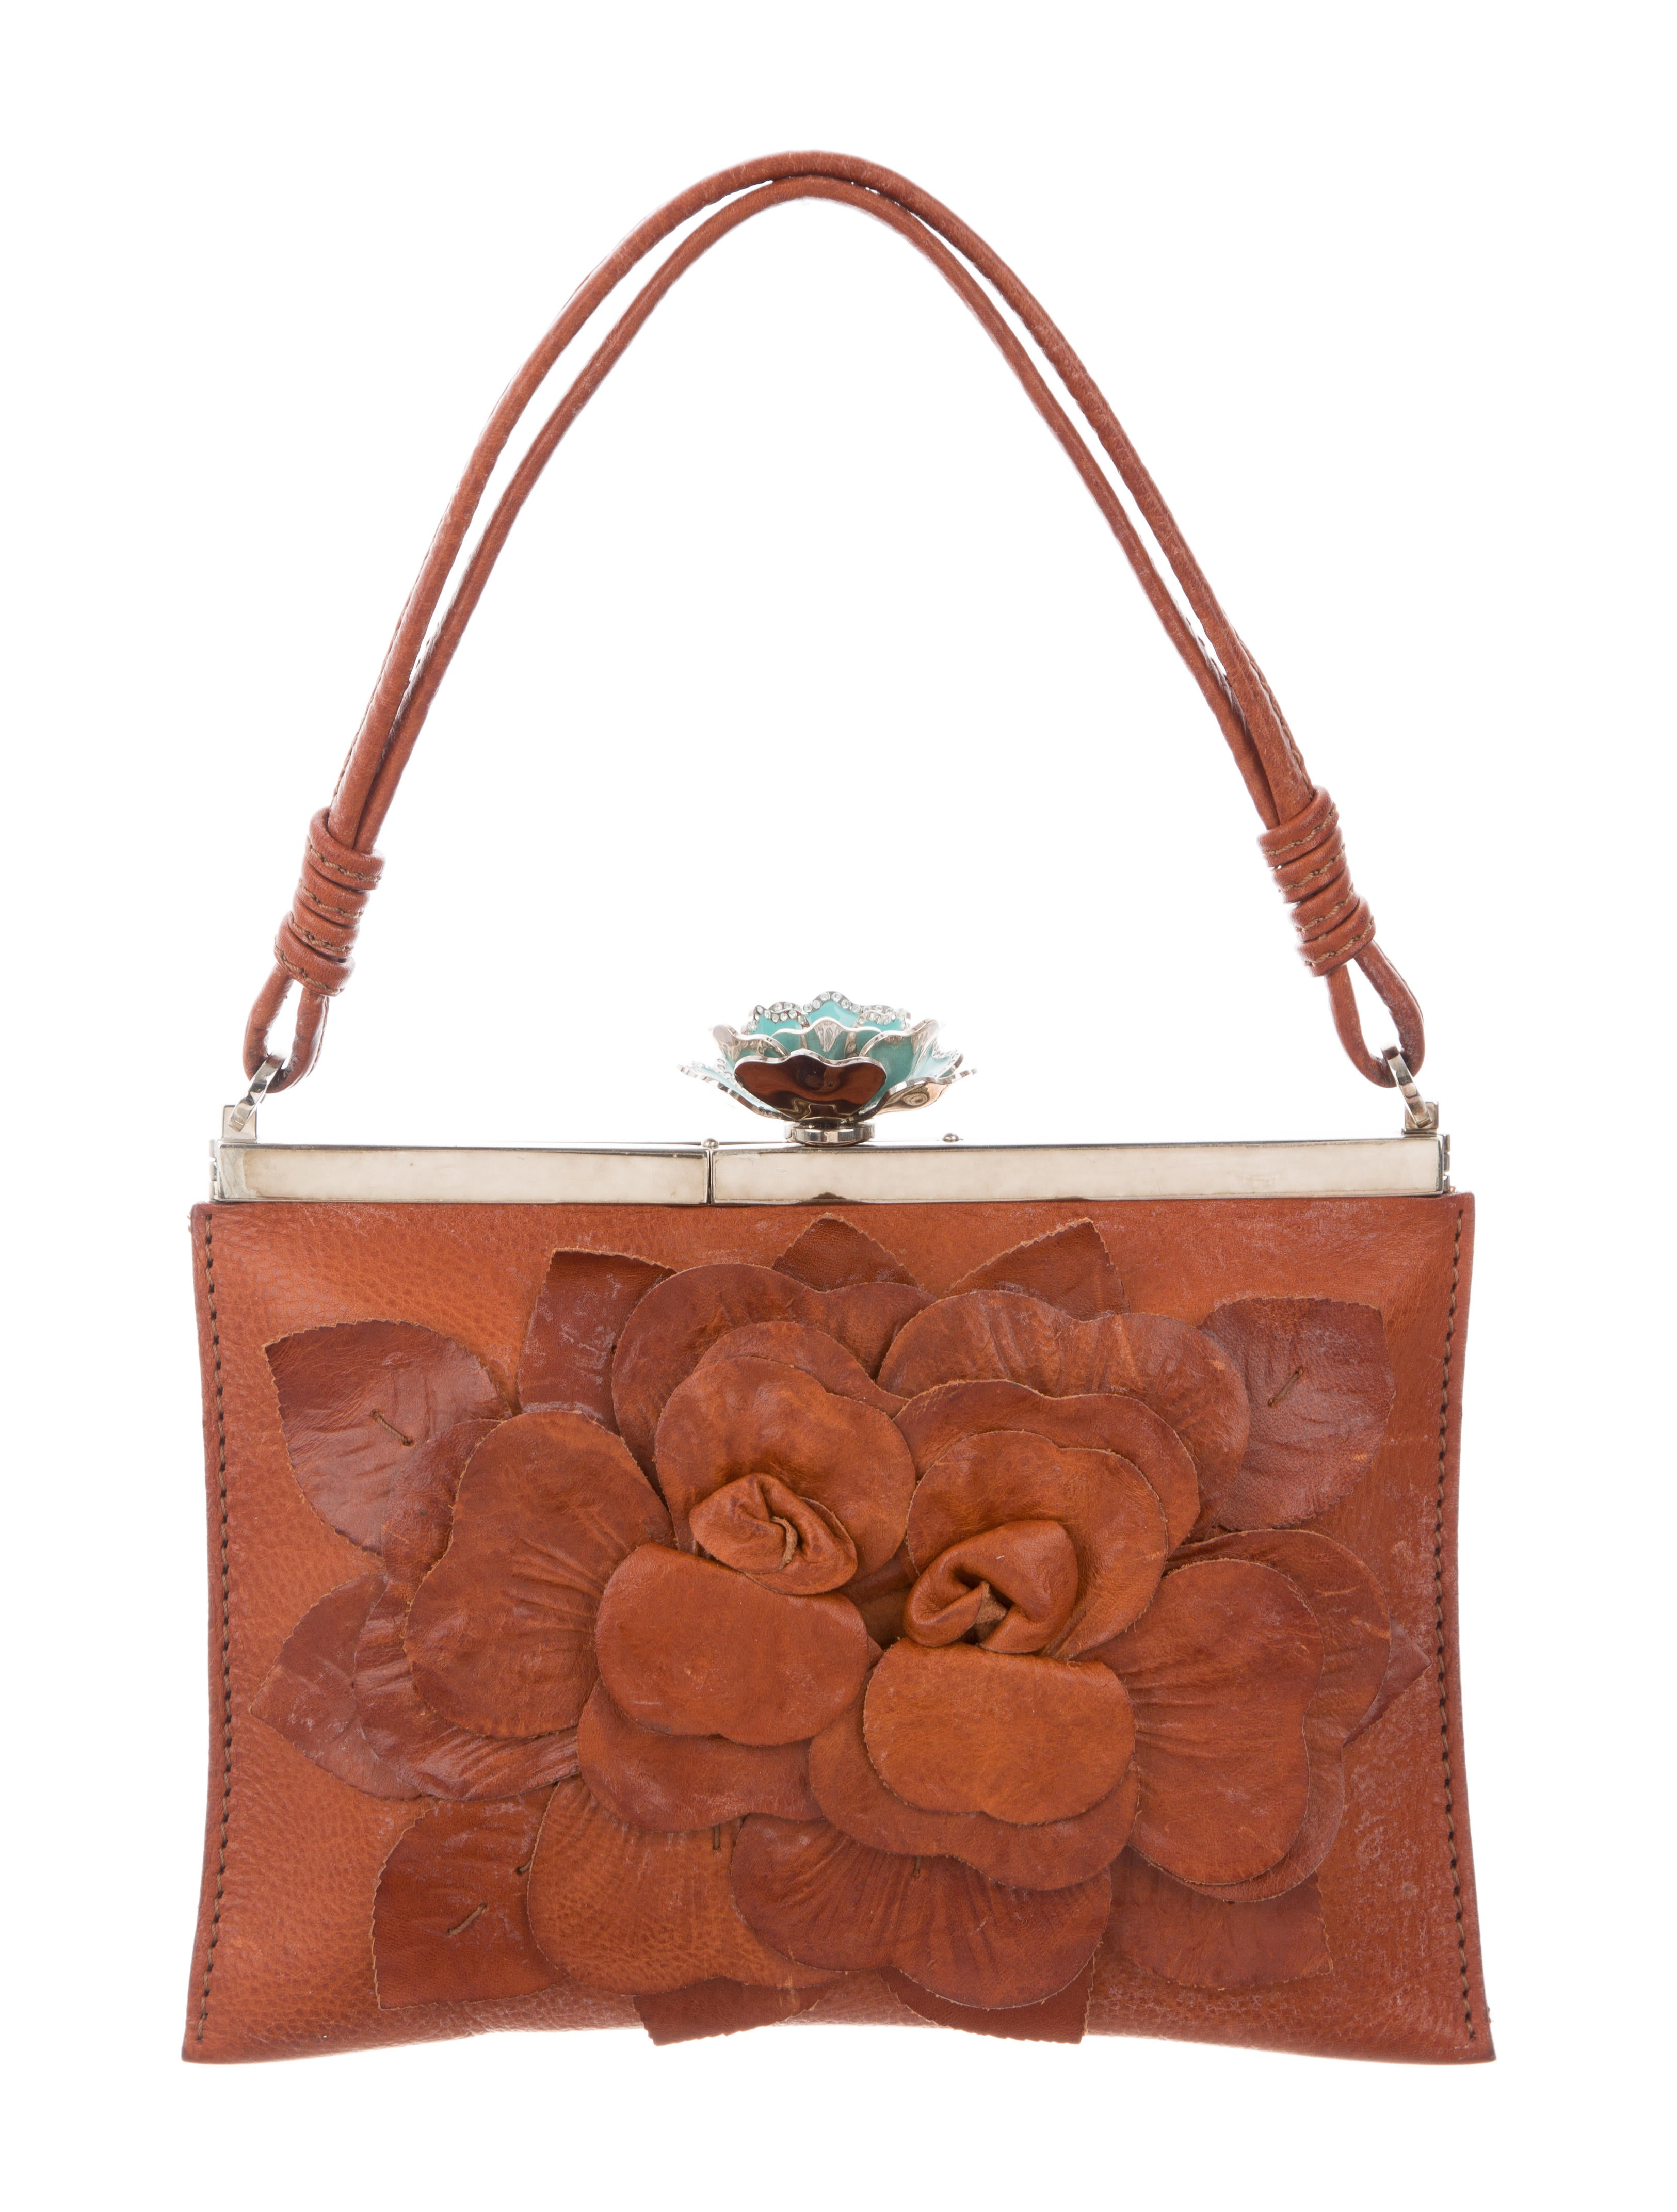 Valentino Leather Floral Appliquu00e9 Bag - Handbags - VAL79518 | The RealReal